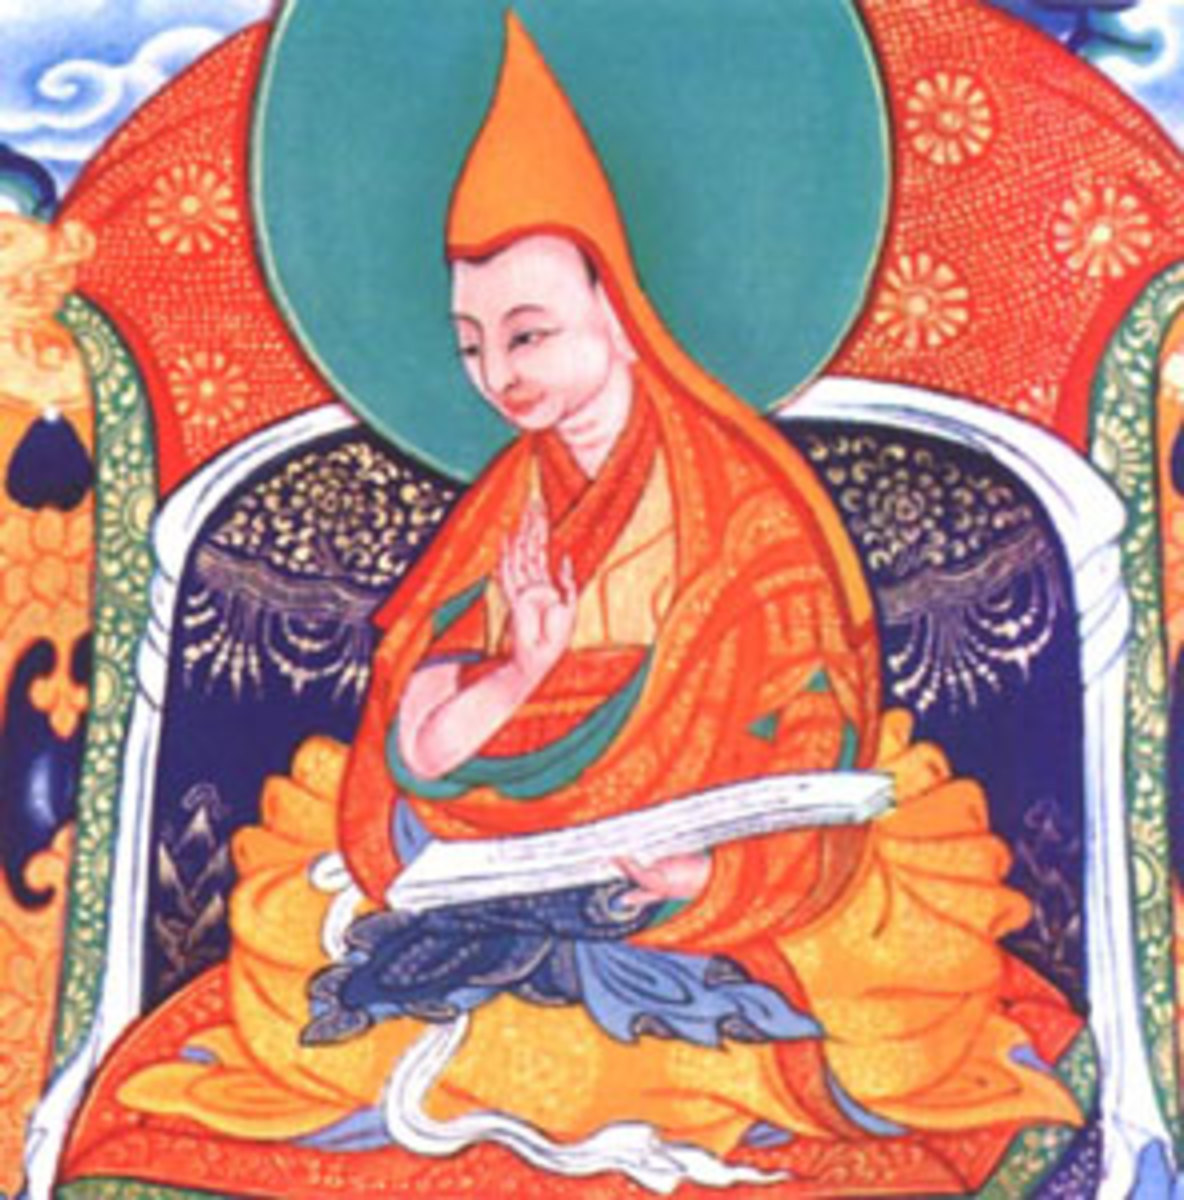 The scroll painting of the First Panchen Lama